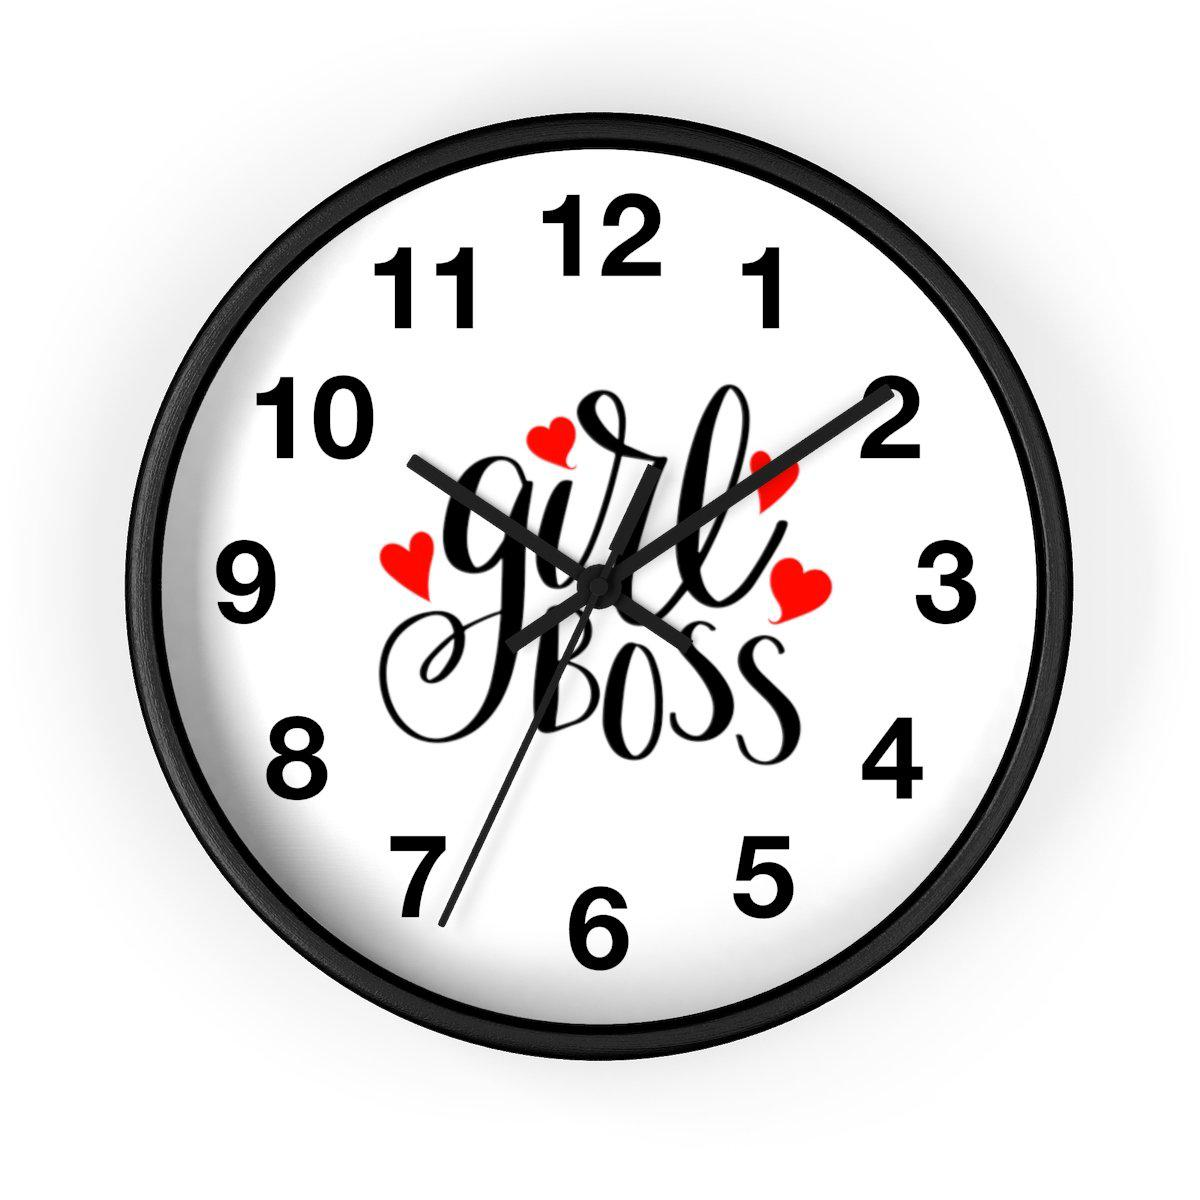 Maison d'Elite Girl Boss Wall clock-Home - Clocks - Wall clocks-Maison d'Elite-Black-Black-Très Elite